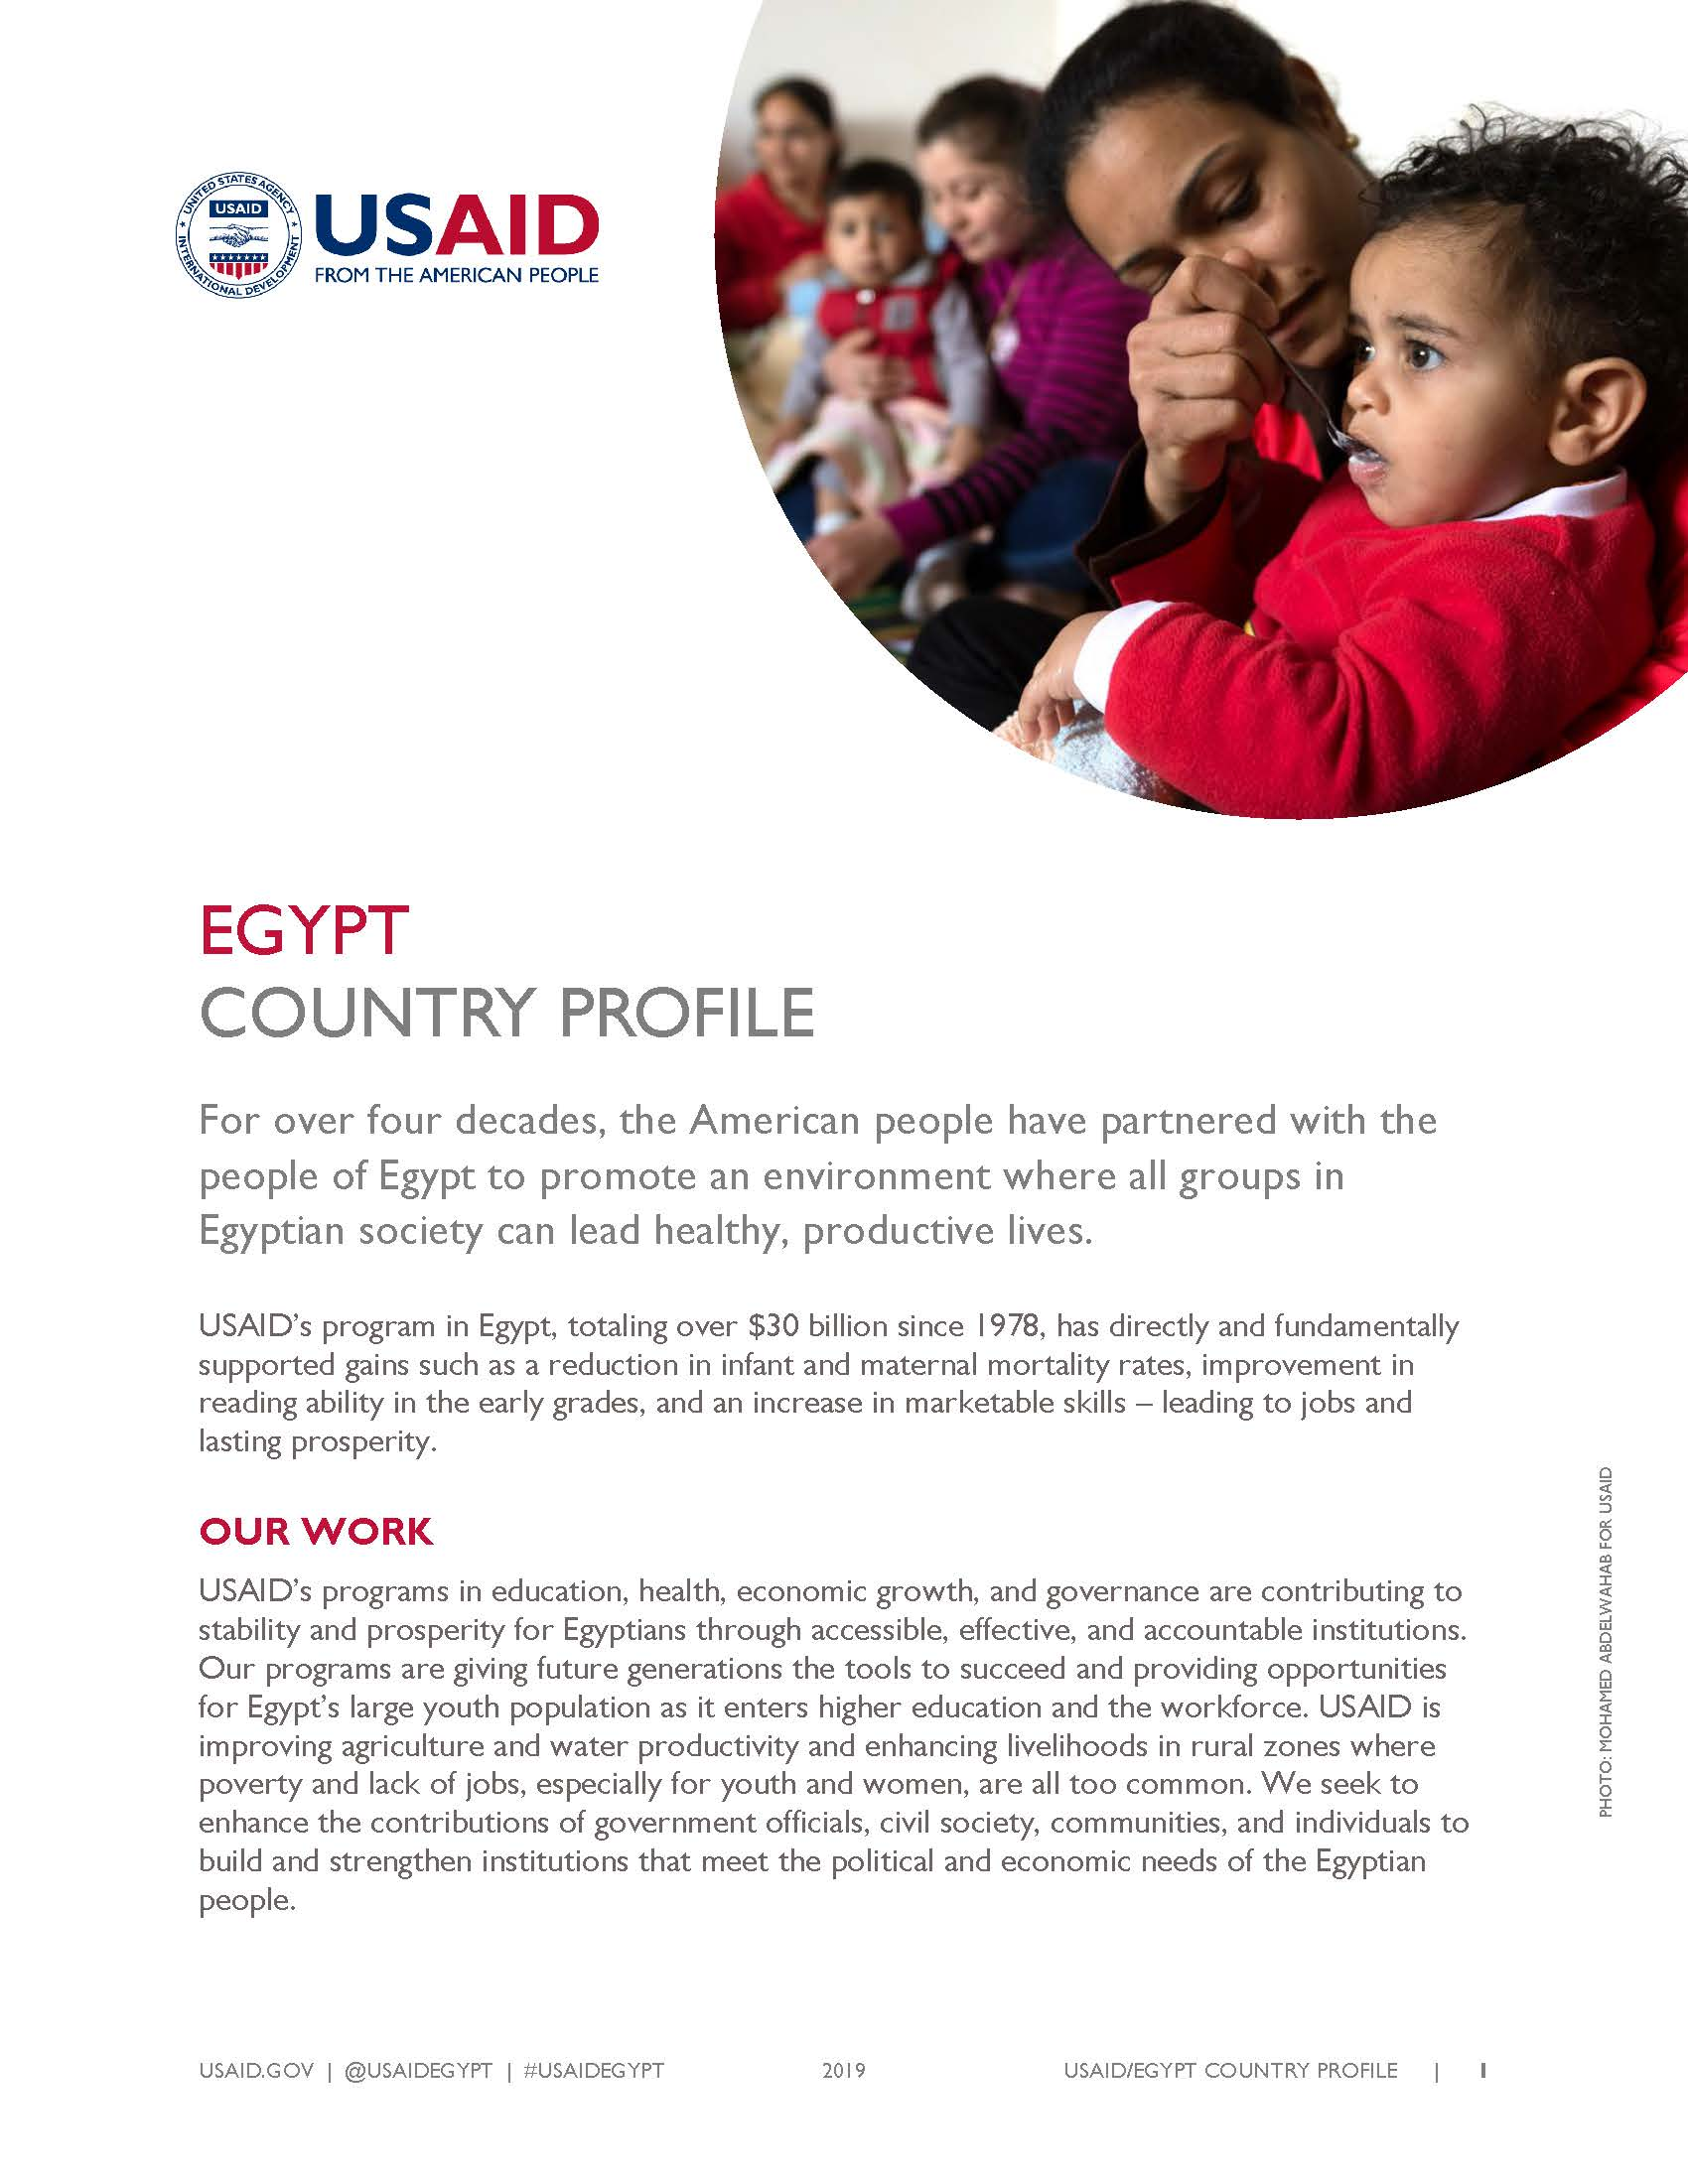 USAID/Egypt Country Profile